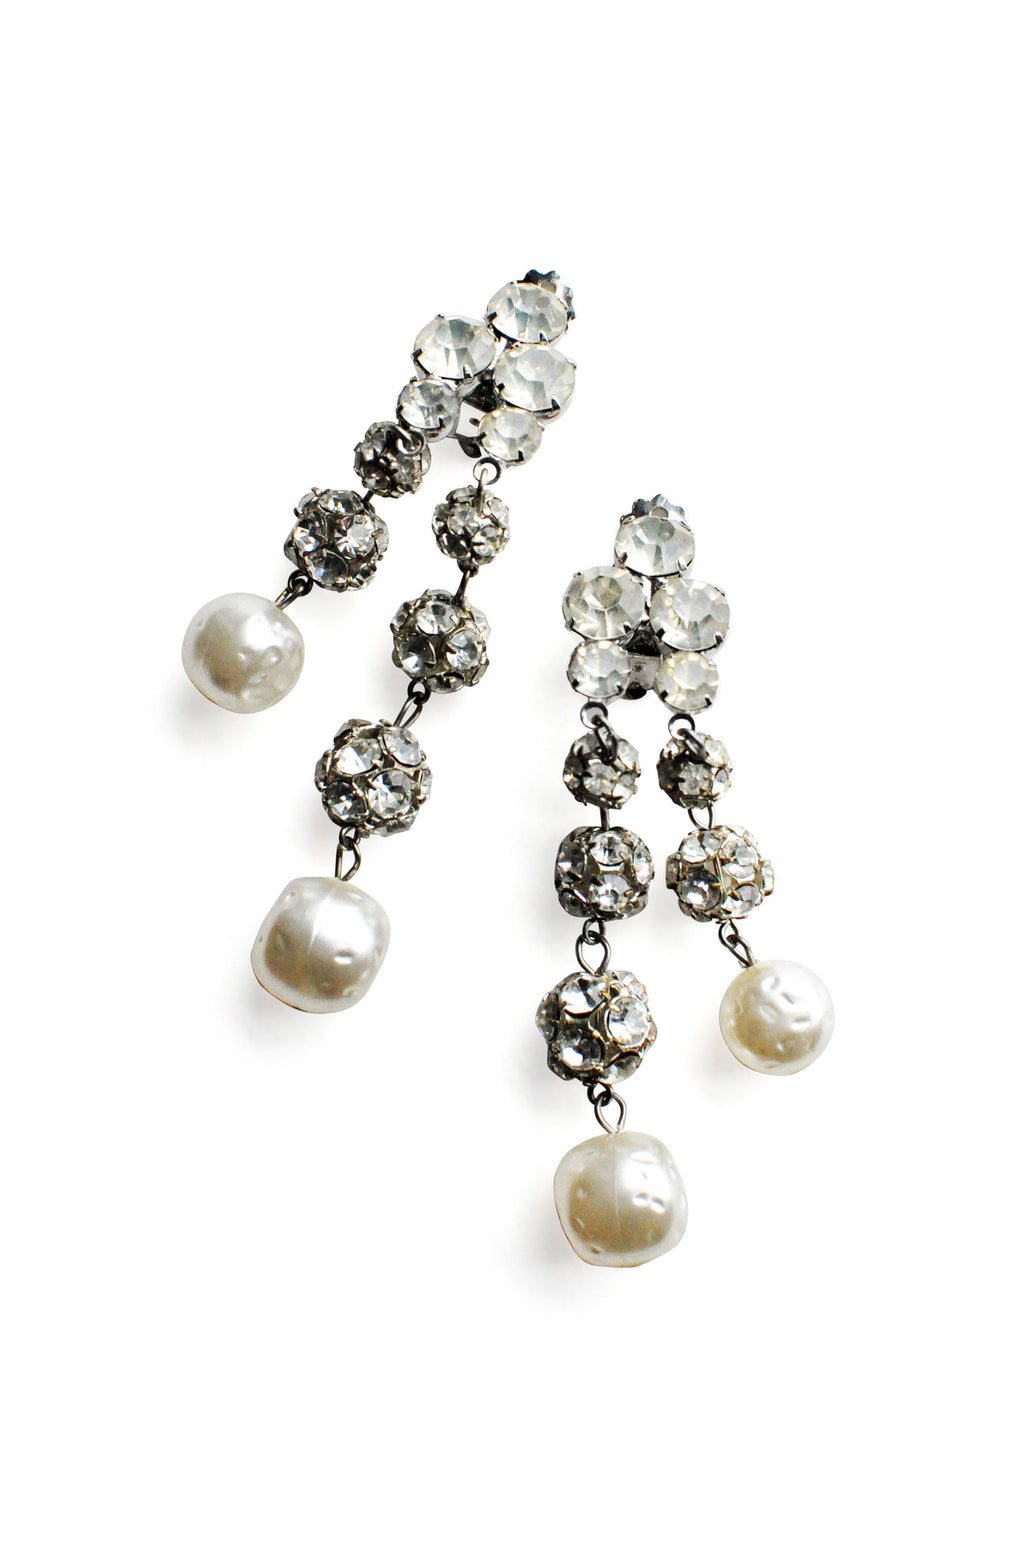 Rhinestone Ball Beads Fringe Clip-on Earrings